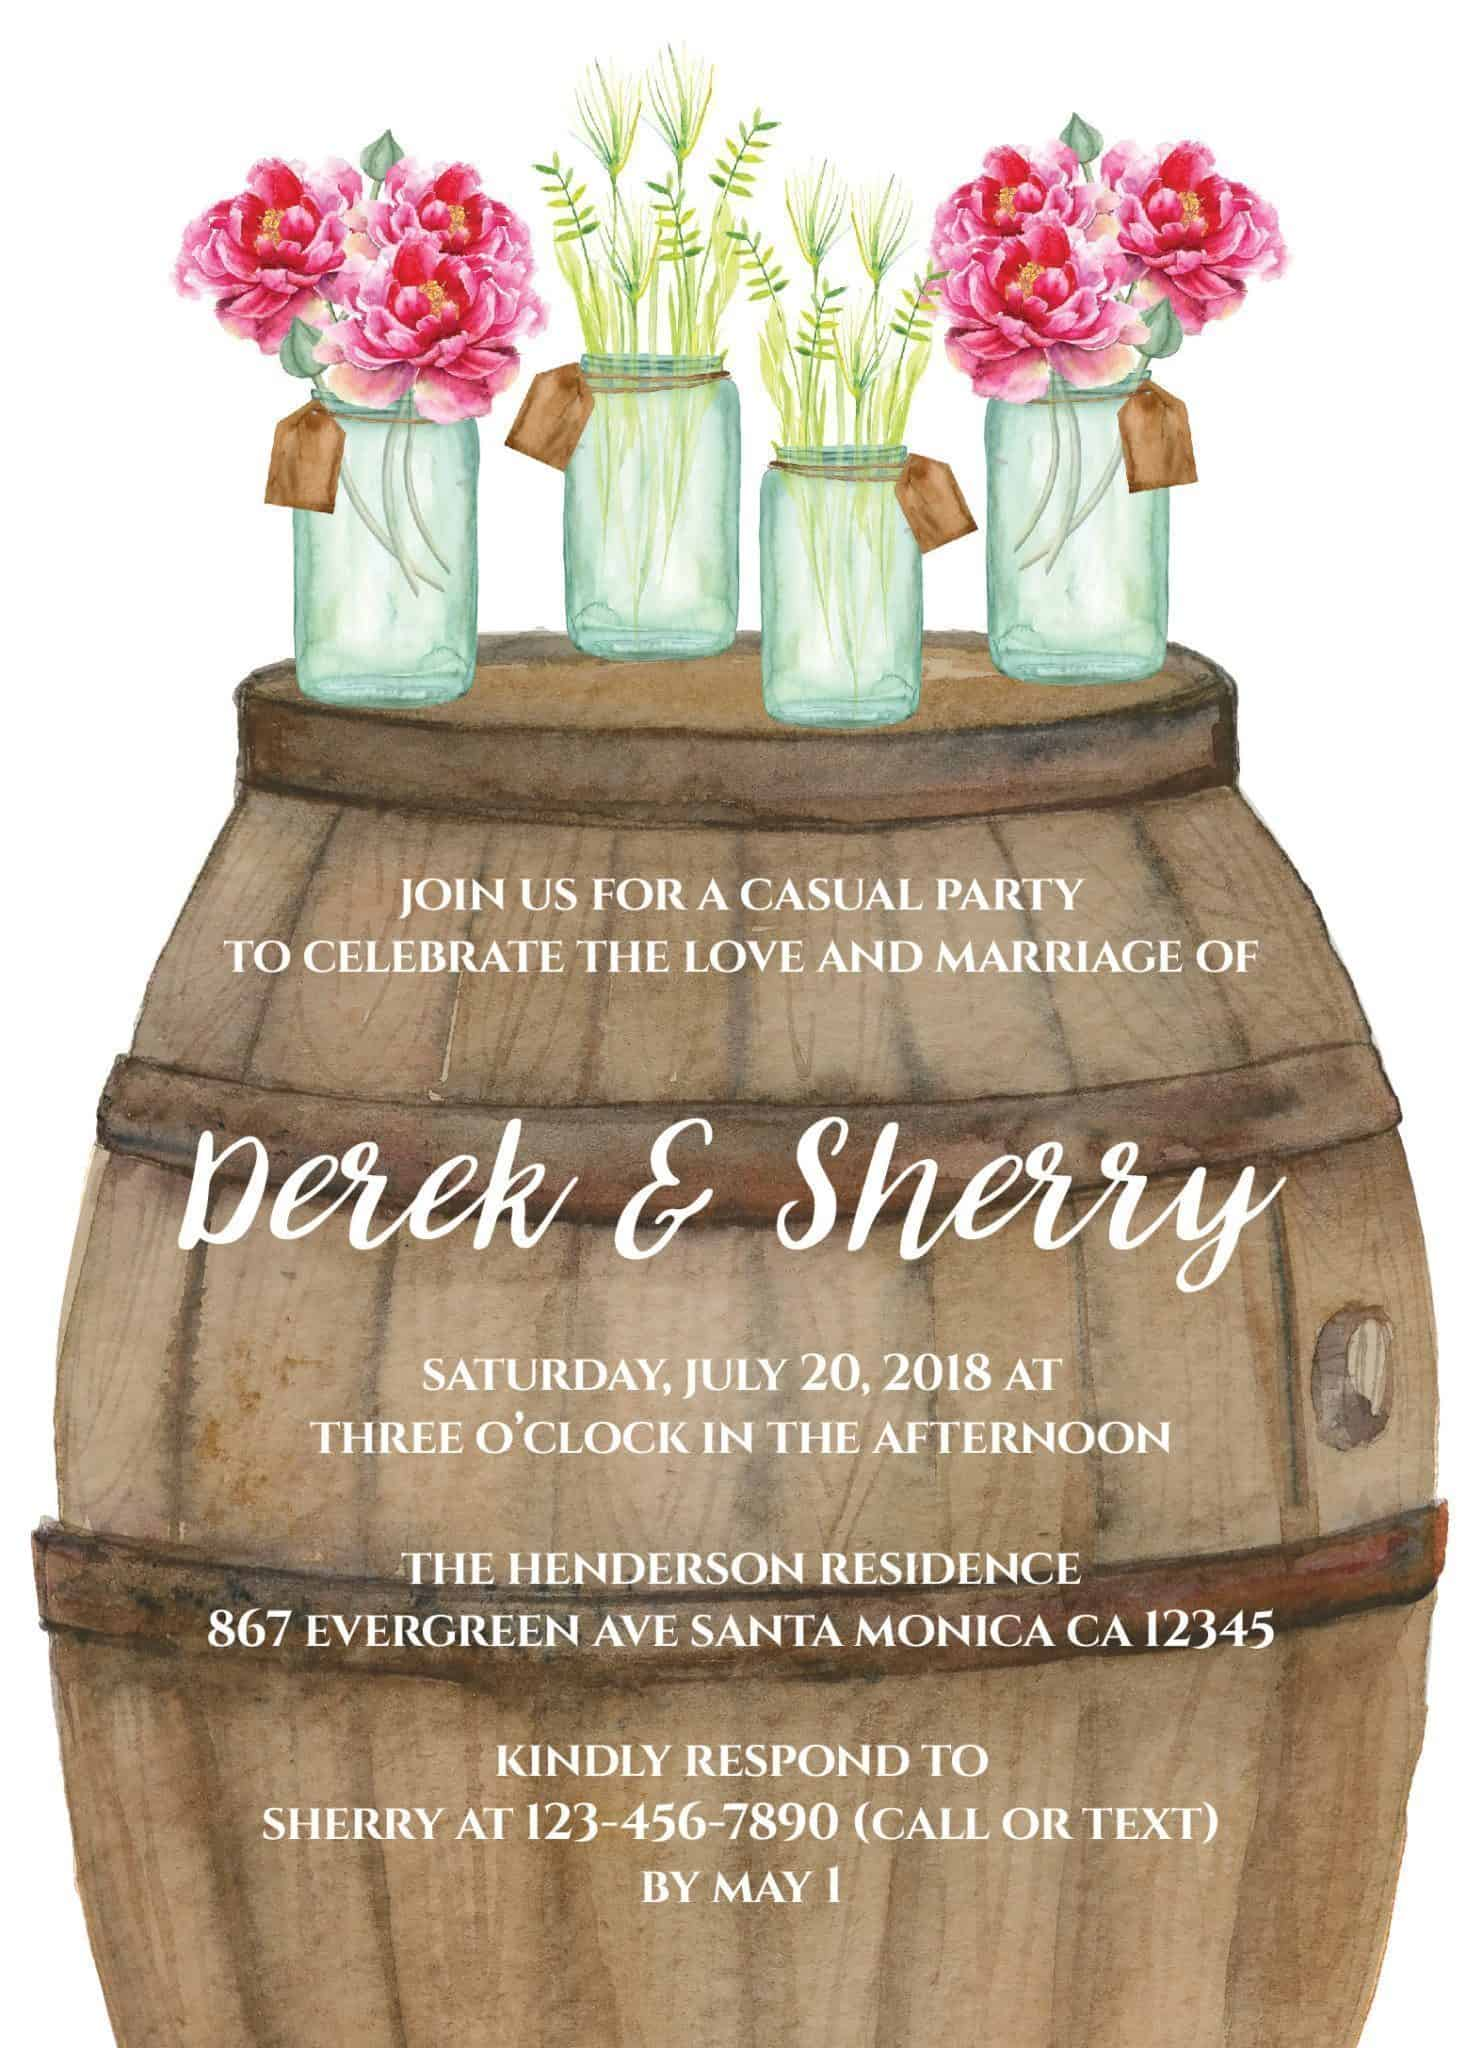 Rustic Wedding Reception Cards for Elopement Receptions, Casual Party, Dinner and Backyard BBQ ...